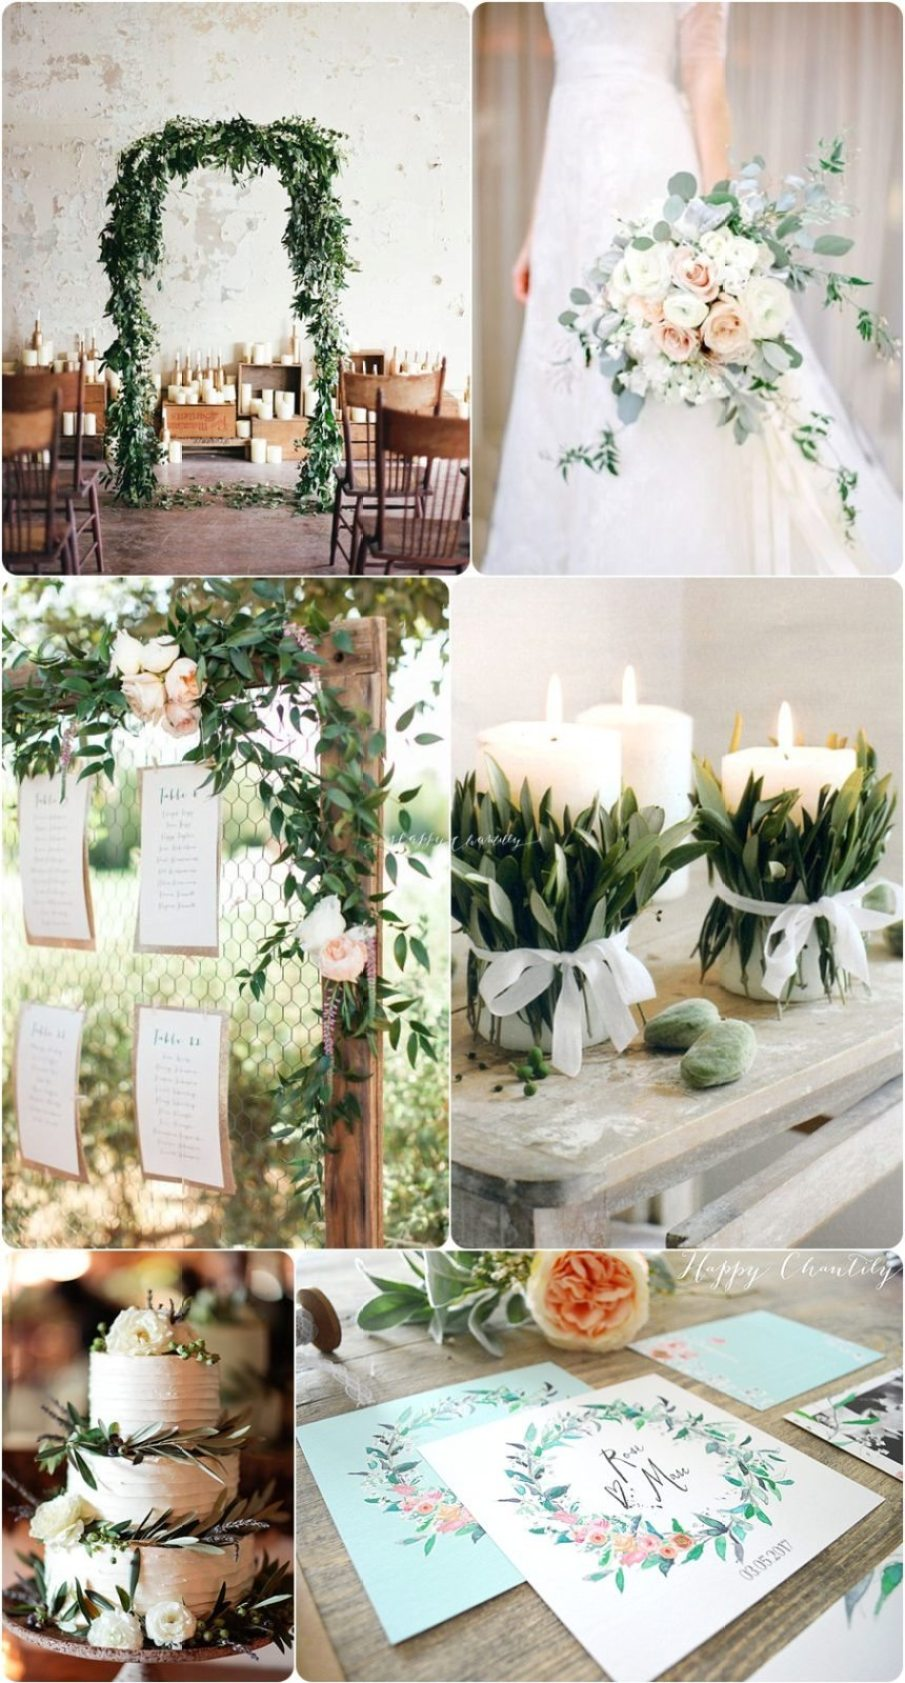 Mariage id es d coration tendances 2016 for Idee deco 2016